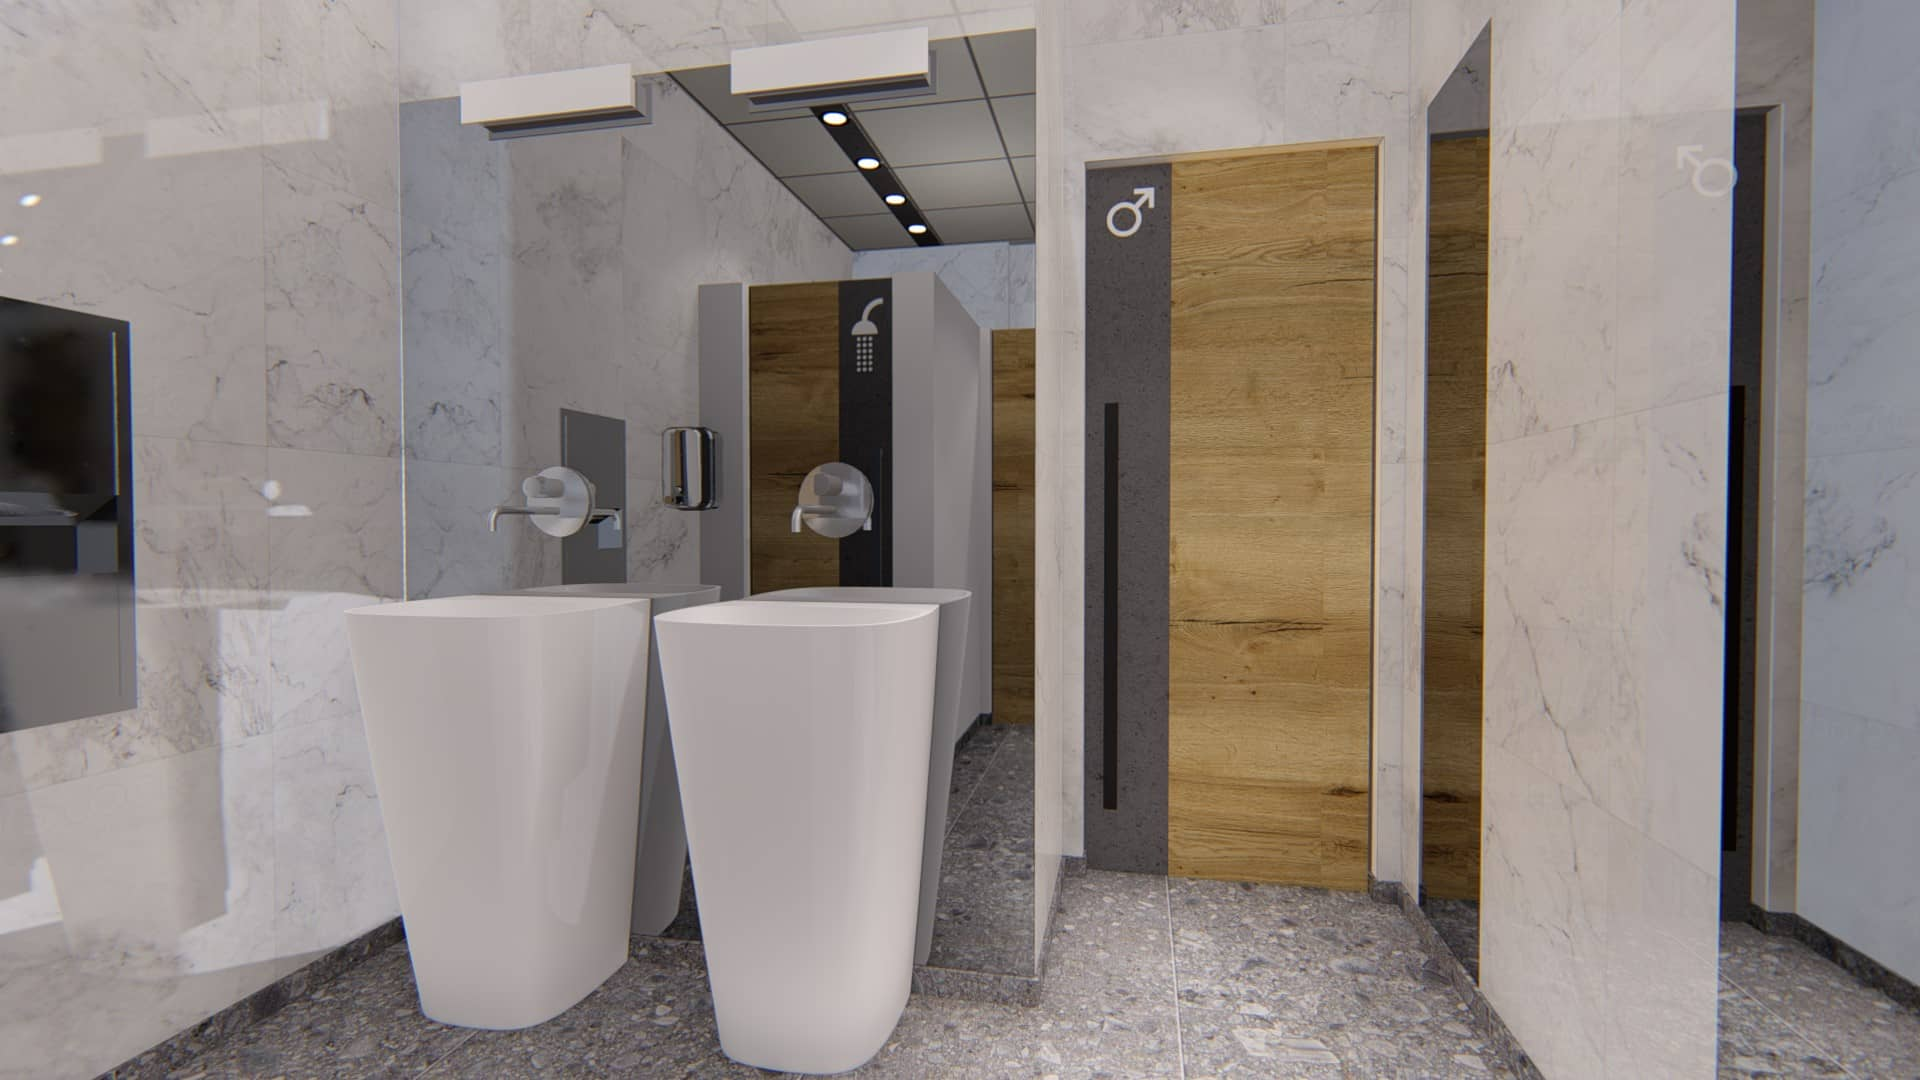 Restrooms in Office Building – BIM Project